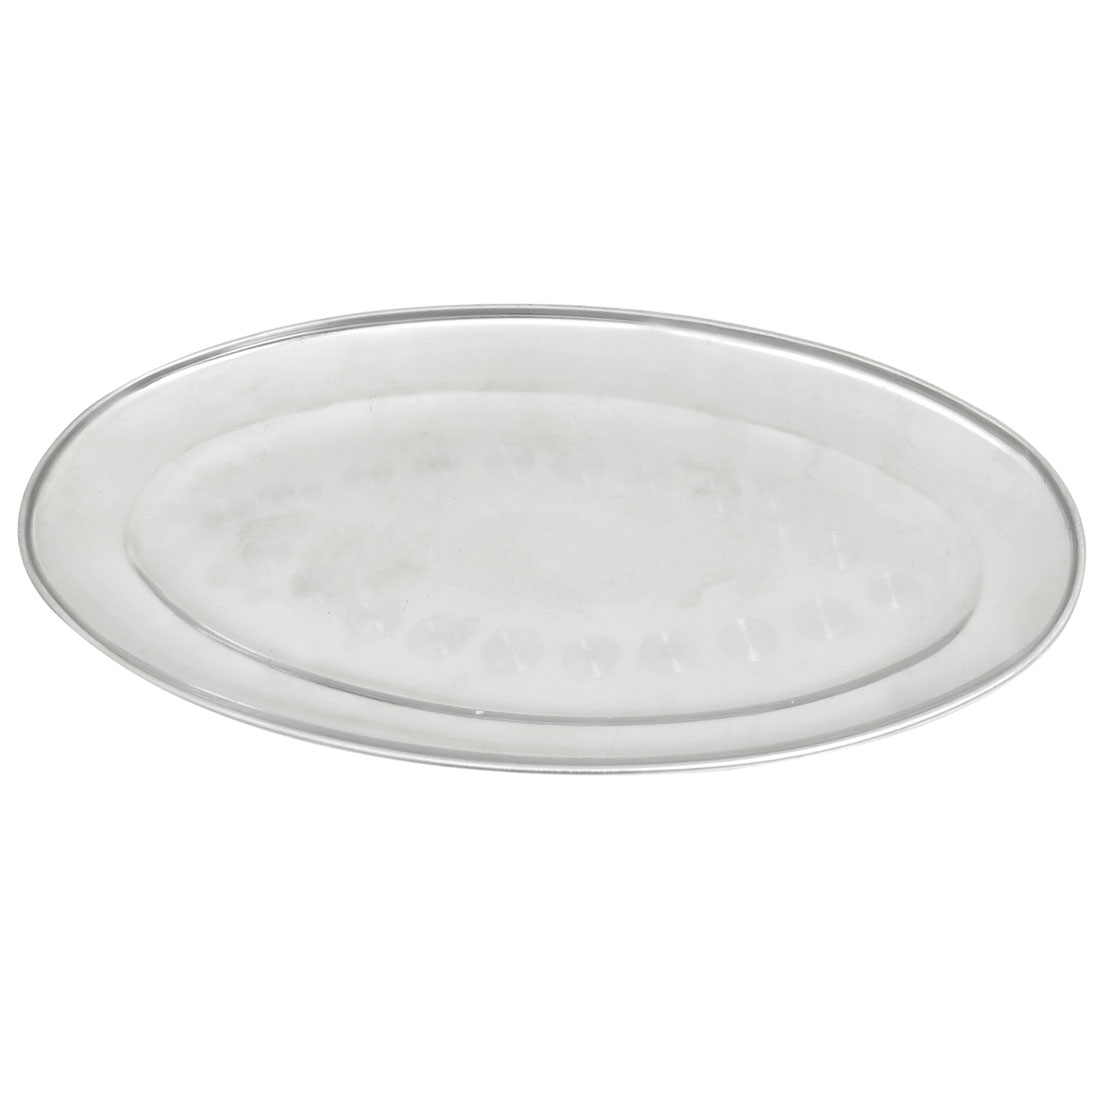 "11.4"" Long Silver Tone Strainless Steel Oval Fish Dish Plate Tray"